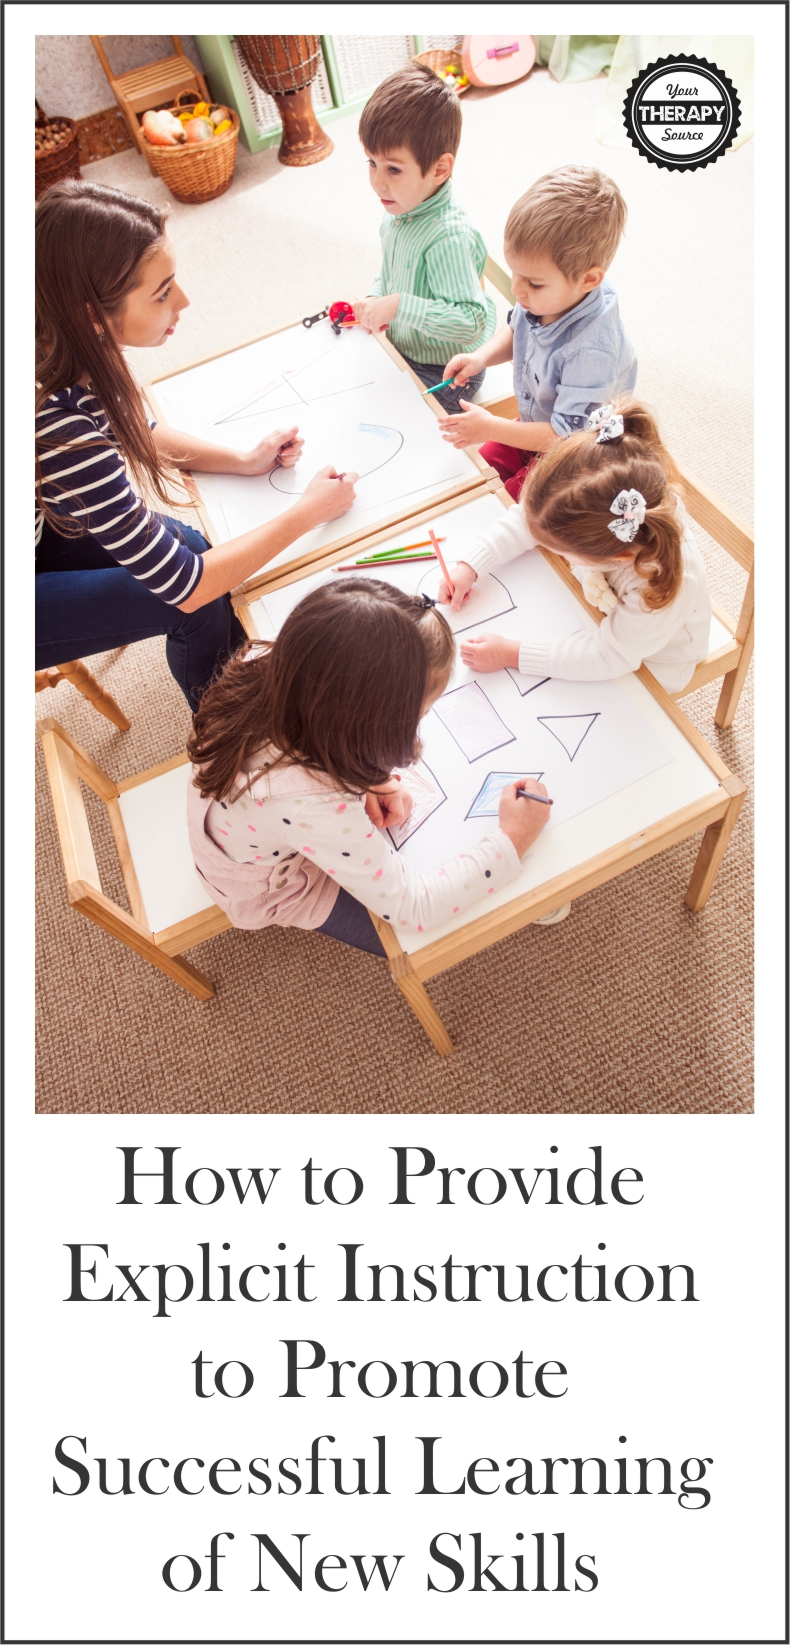 How to Provide Explicit Instruction to Promote Successful Learning of New Skills